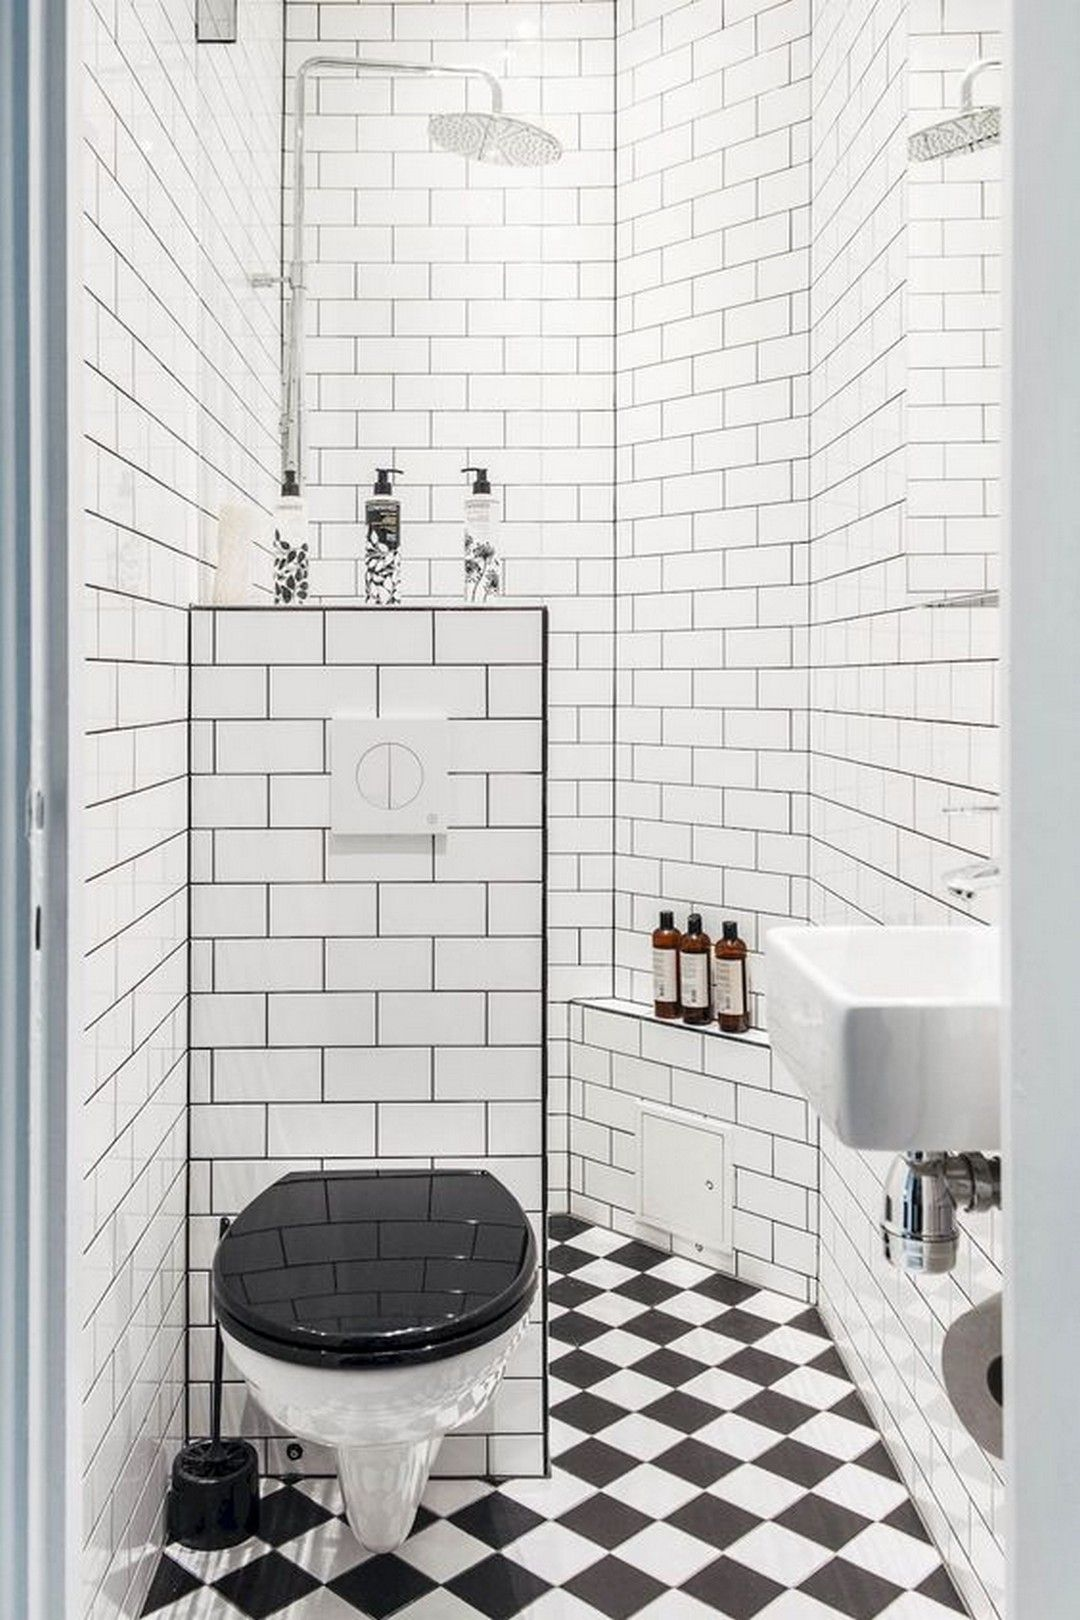 How to Begin Bathroom Renovation for Small Spaces with The Following Ideas #smallbathroomremodel